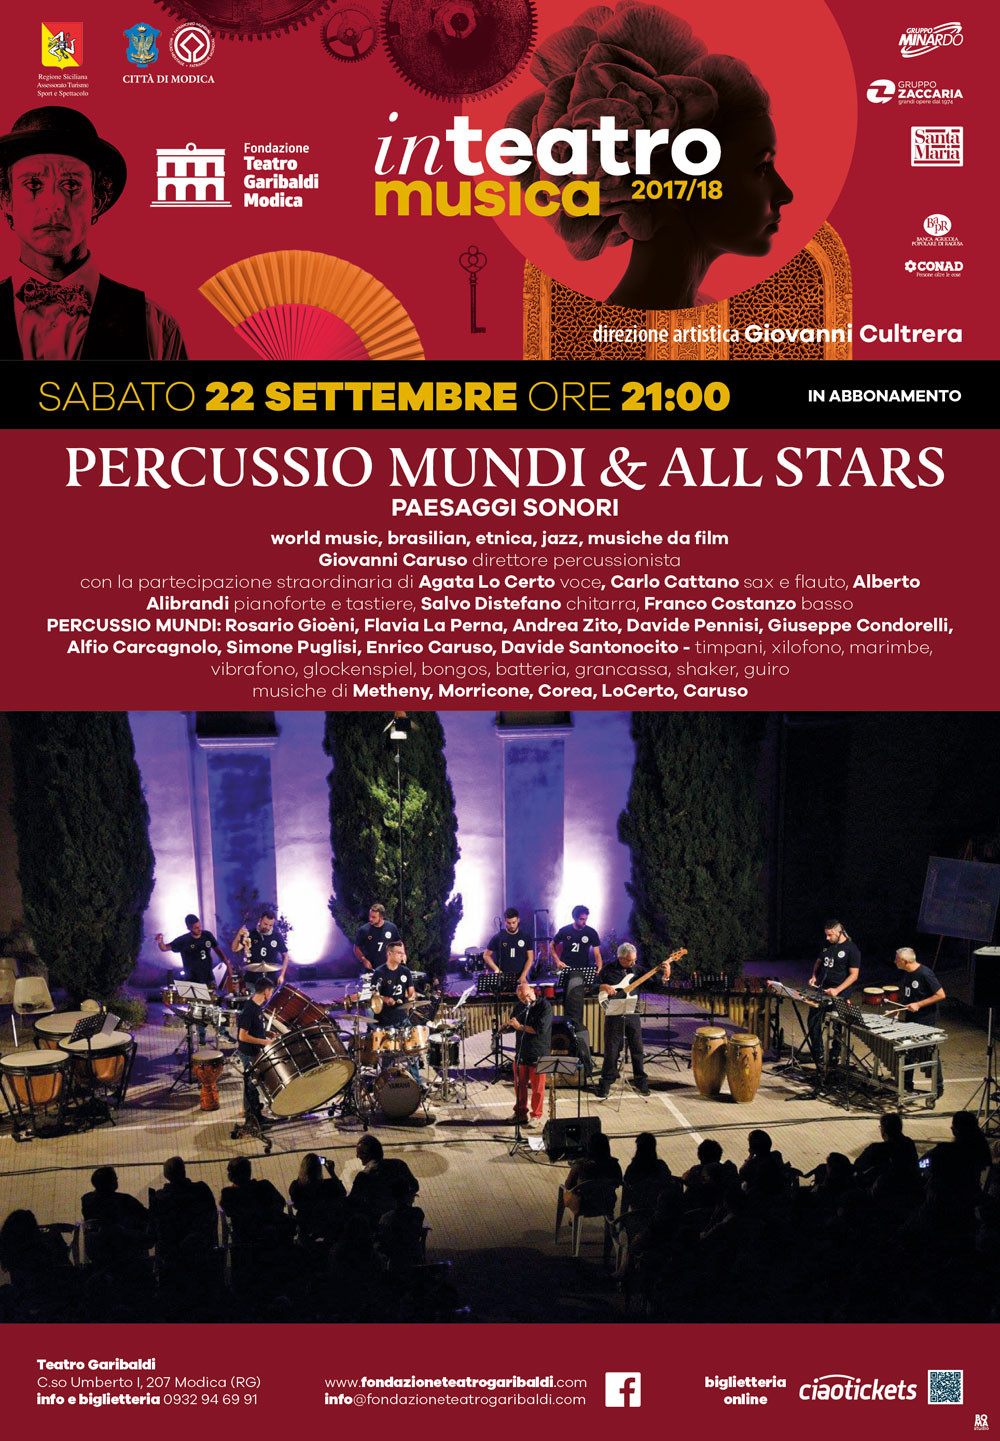 6x8 percussio mundi e all stars